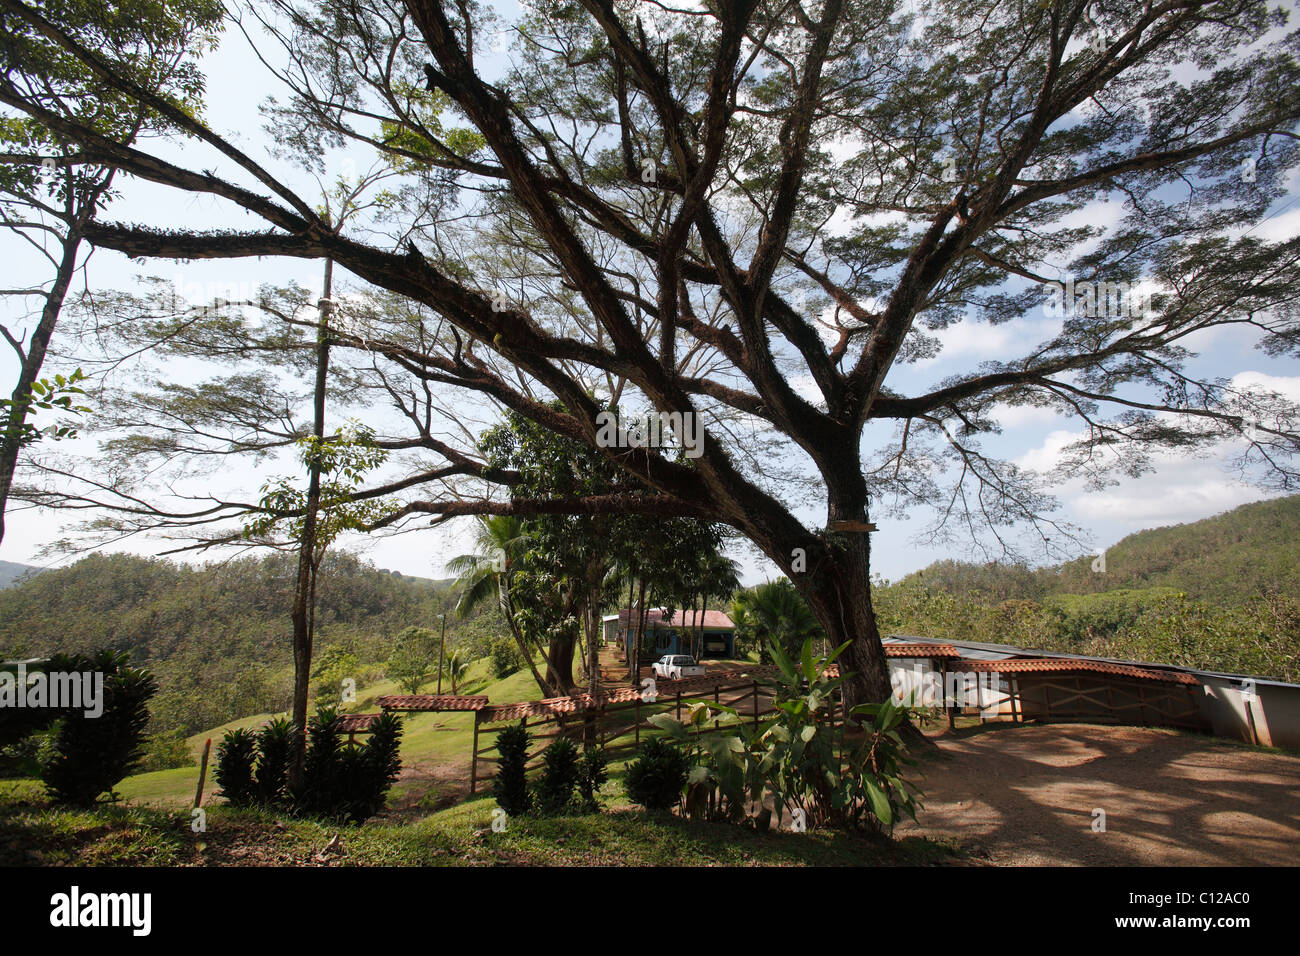 An old growth tree preserved in front of a ranch house in San Jose province, Costa Rica - Stock Image